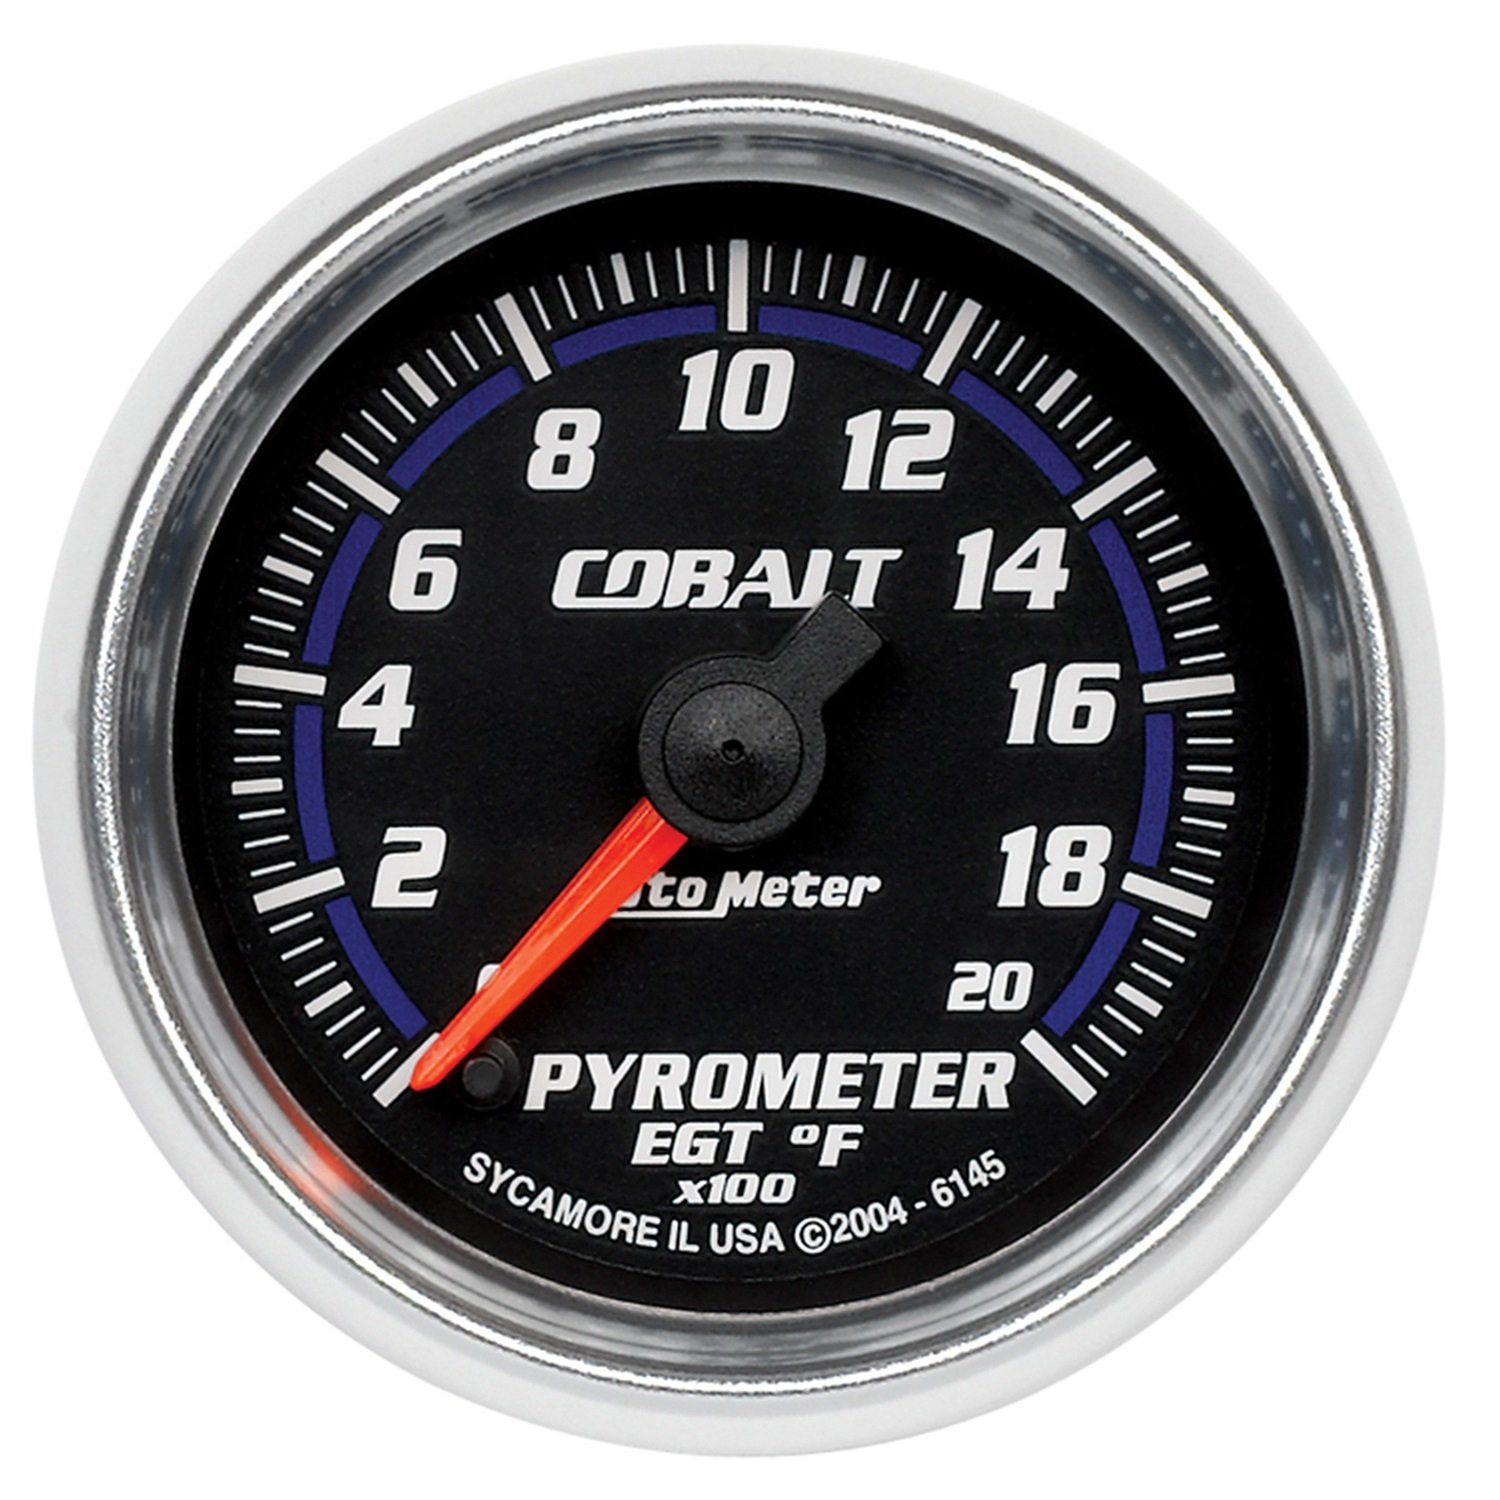 Auto Meter 6145 Cobalt Full Sweep Electric Pyrometer Gauge